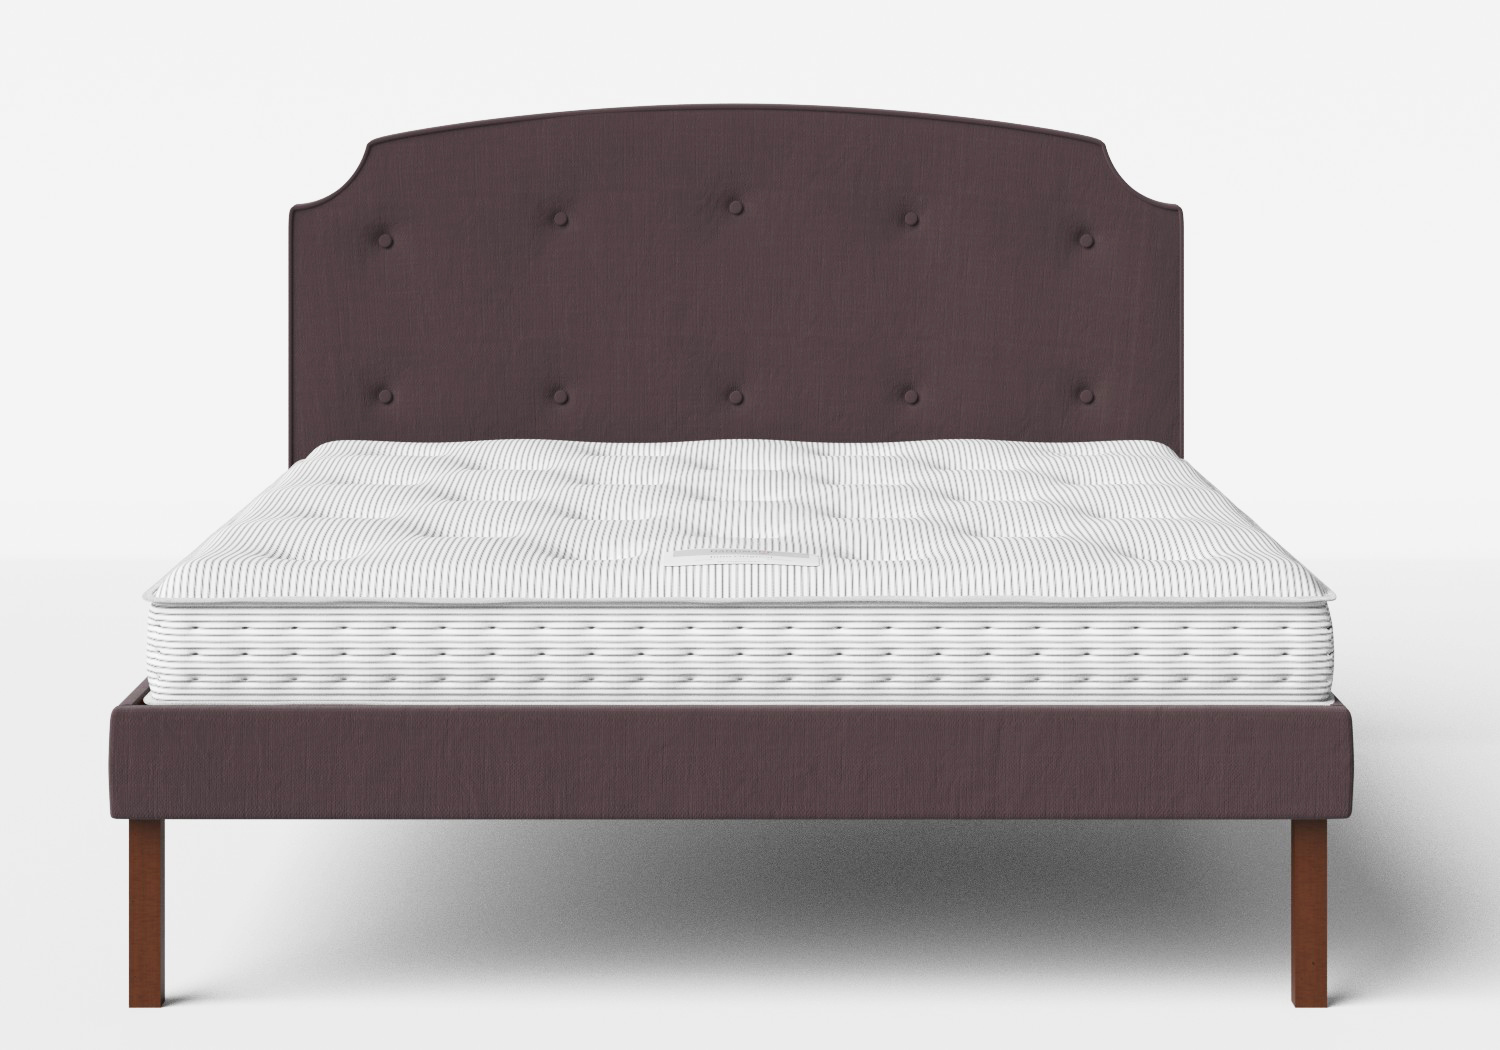 Kobe Upholstered Bed in Aubergine fabric with buttoning shown with Juno 1 mattress